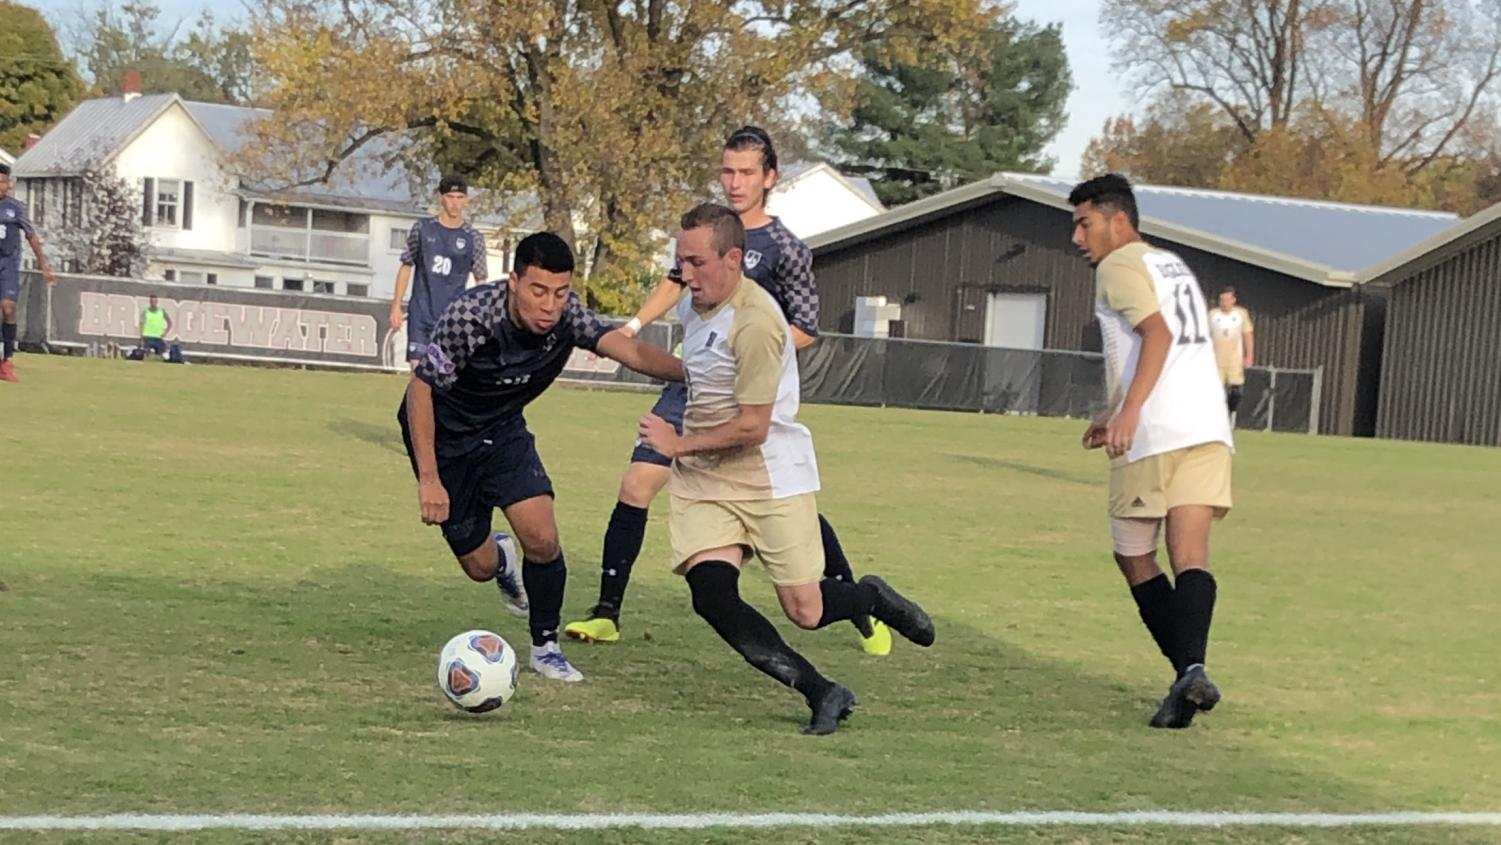 Sophomore defender for the Eagles, Justin Thorburn, fights for the ball in the first half.